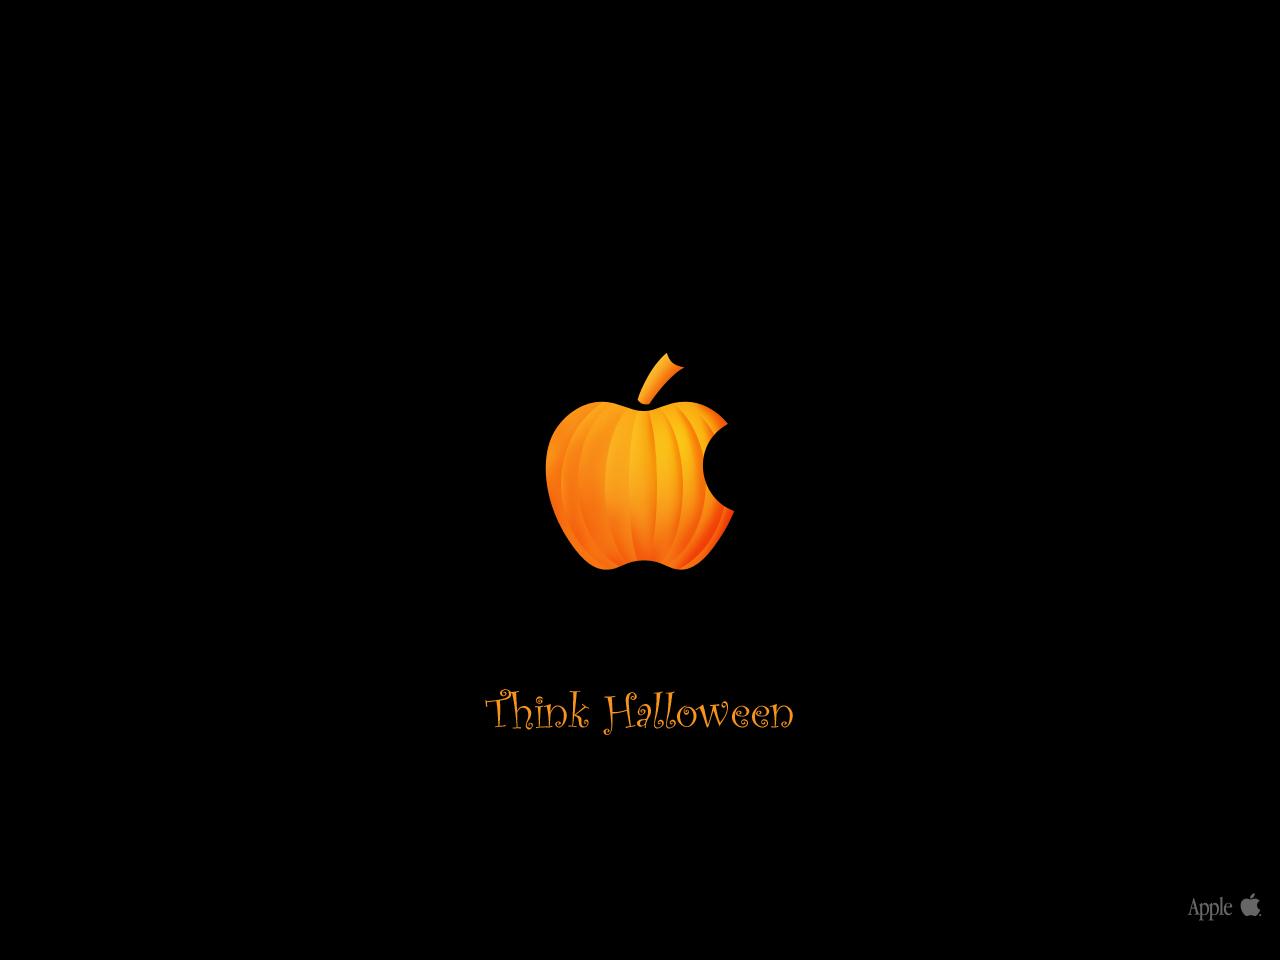 Think_Halloween_2012 HD Wallpaper